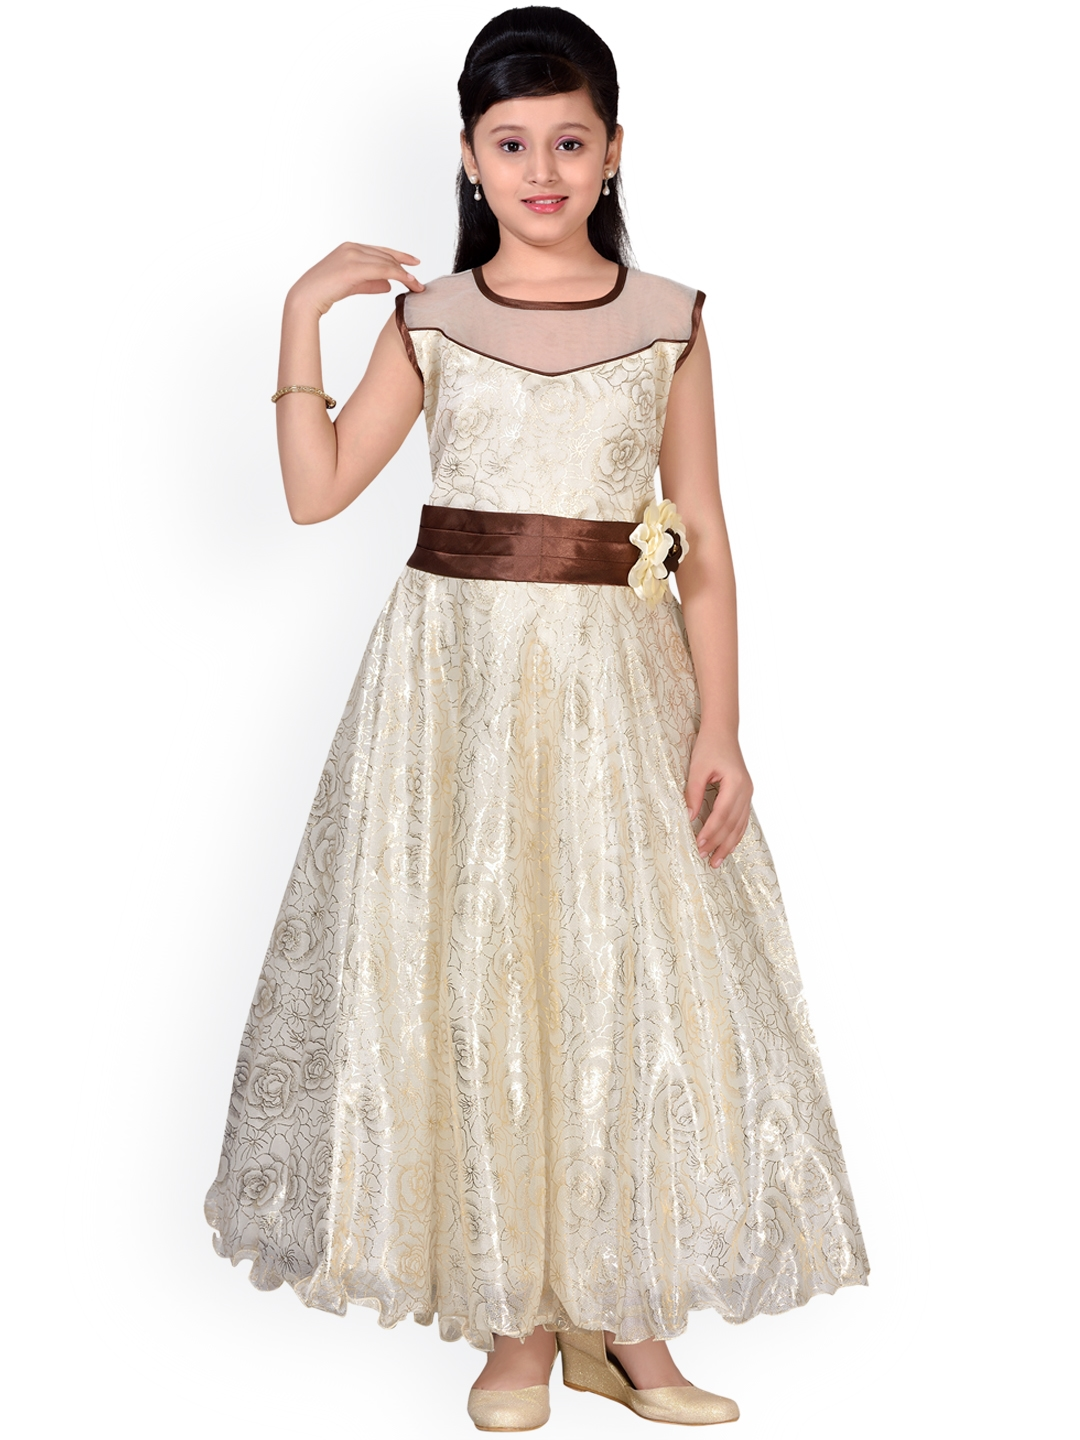 8529b2a7860 Buy Adiva Girls Cream Coloured Printed Maxi Dress - Dresses for ...